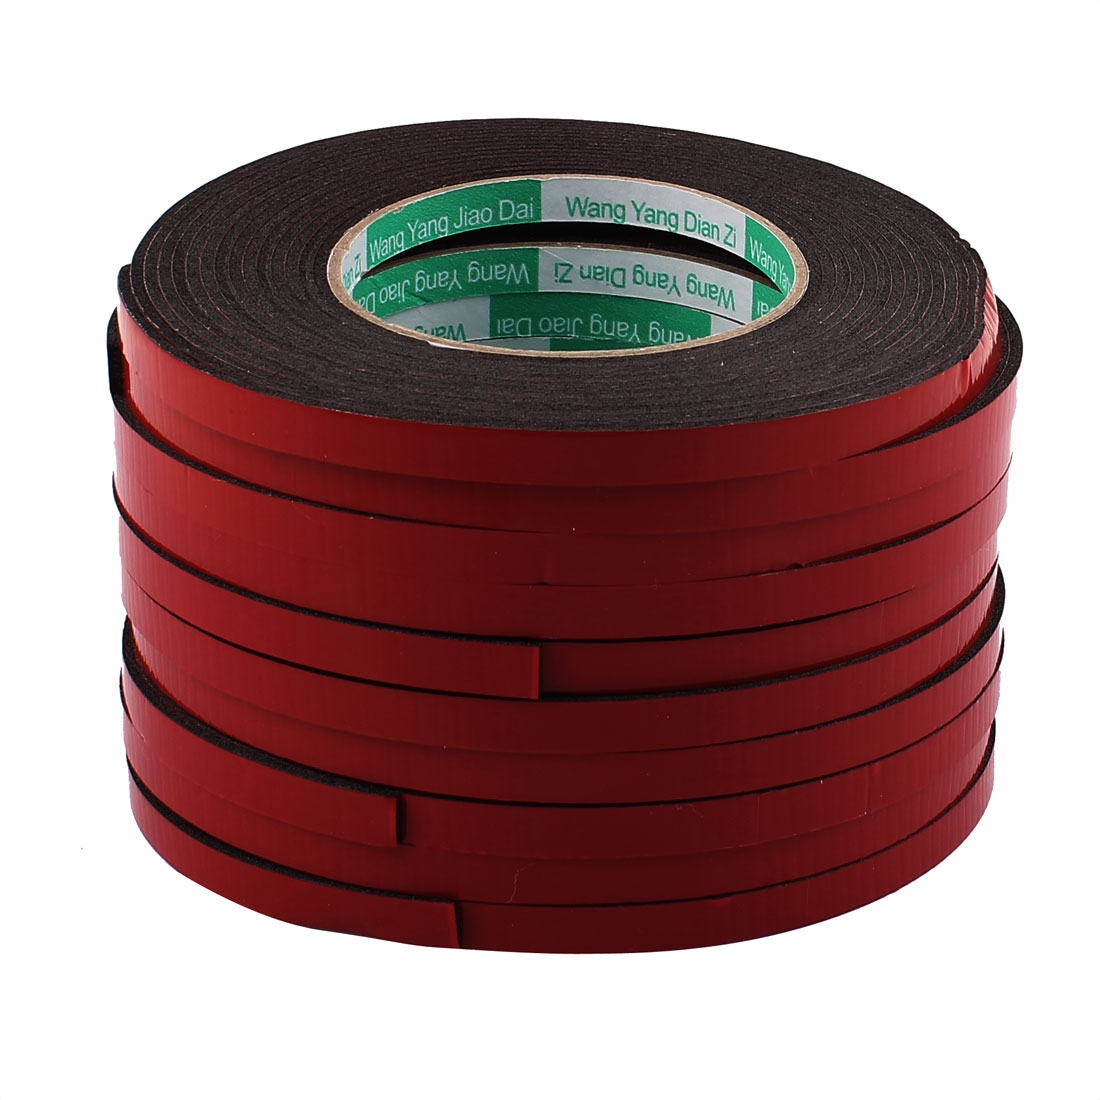 10 Pcs 0.8CM Width 5M Length 2MM Thick Dual Sided Sealing Shockproof Sponge Tape